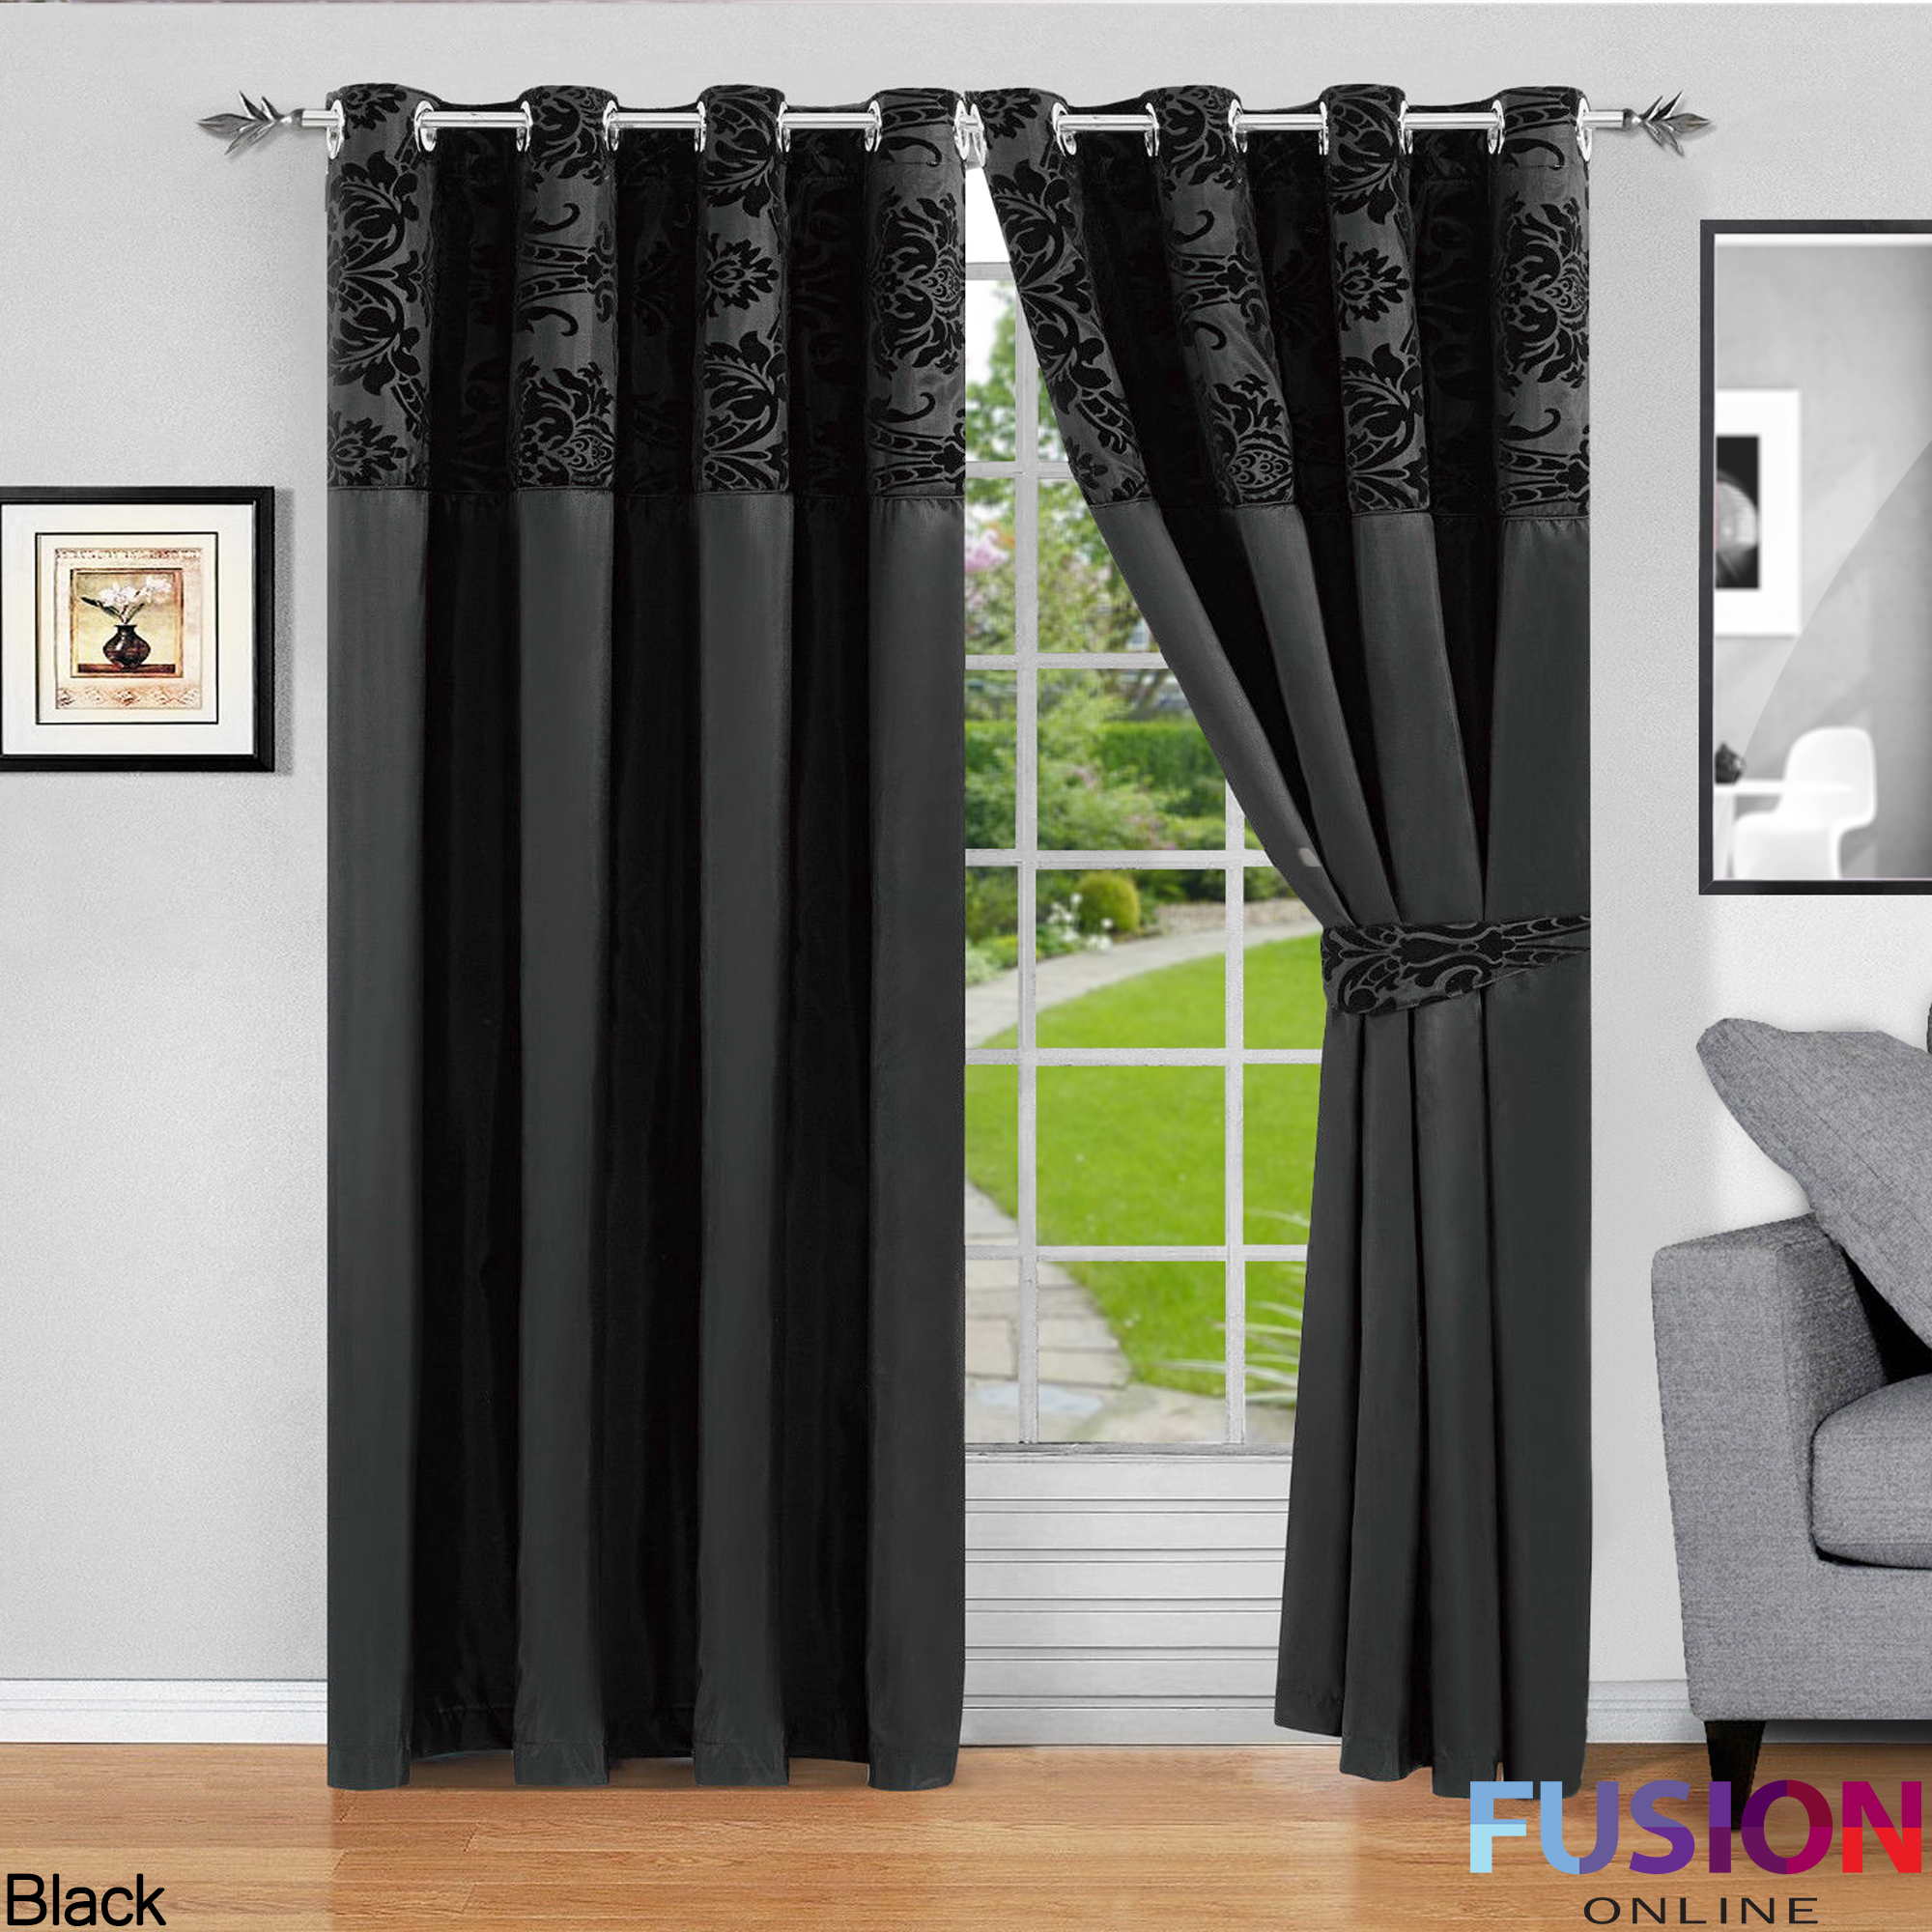 Kitchen Curtains Amazon Co Uk: RING TOP FULLY LINED PAIR EYELET READY CURTAINS LUXURY